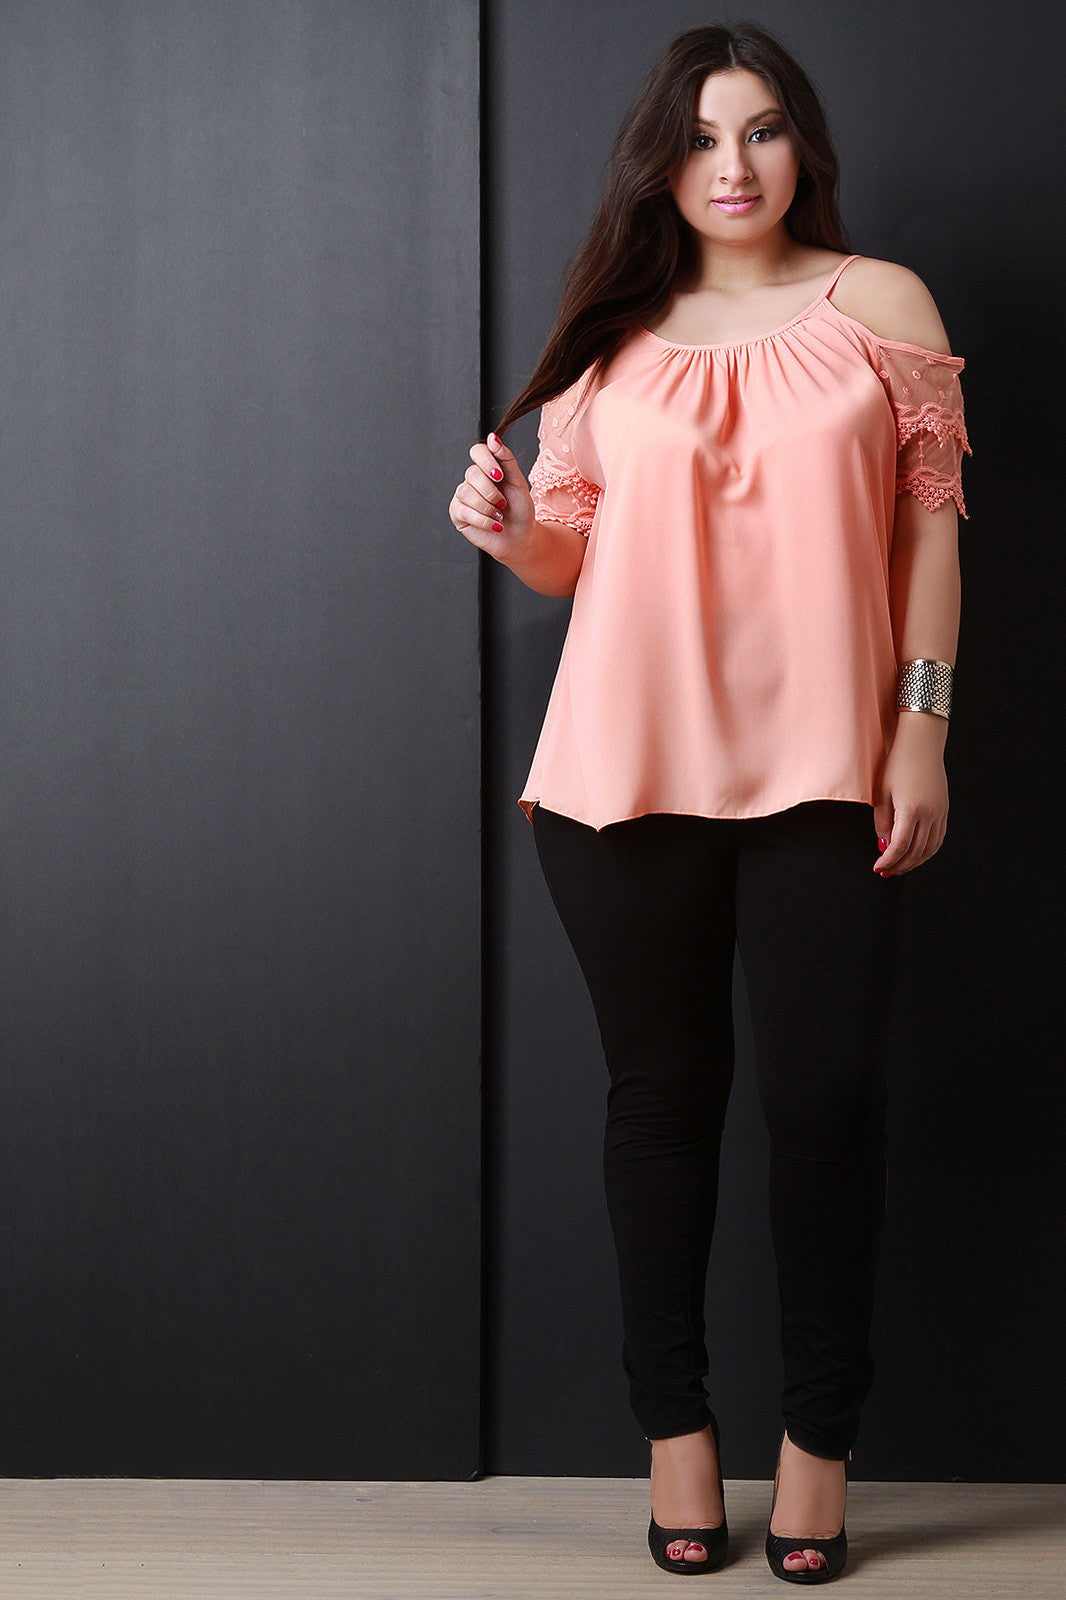 Lace Short Sleeves Cold Shoulder Top - Thick 'N' Curvy Shop - 3